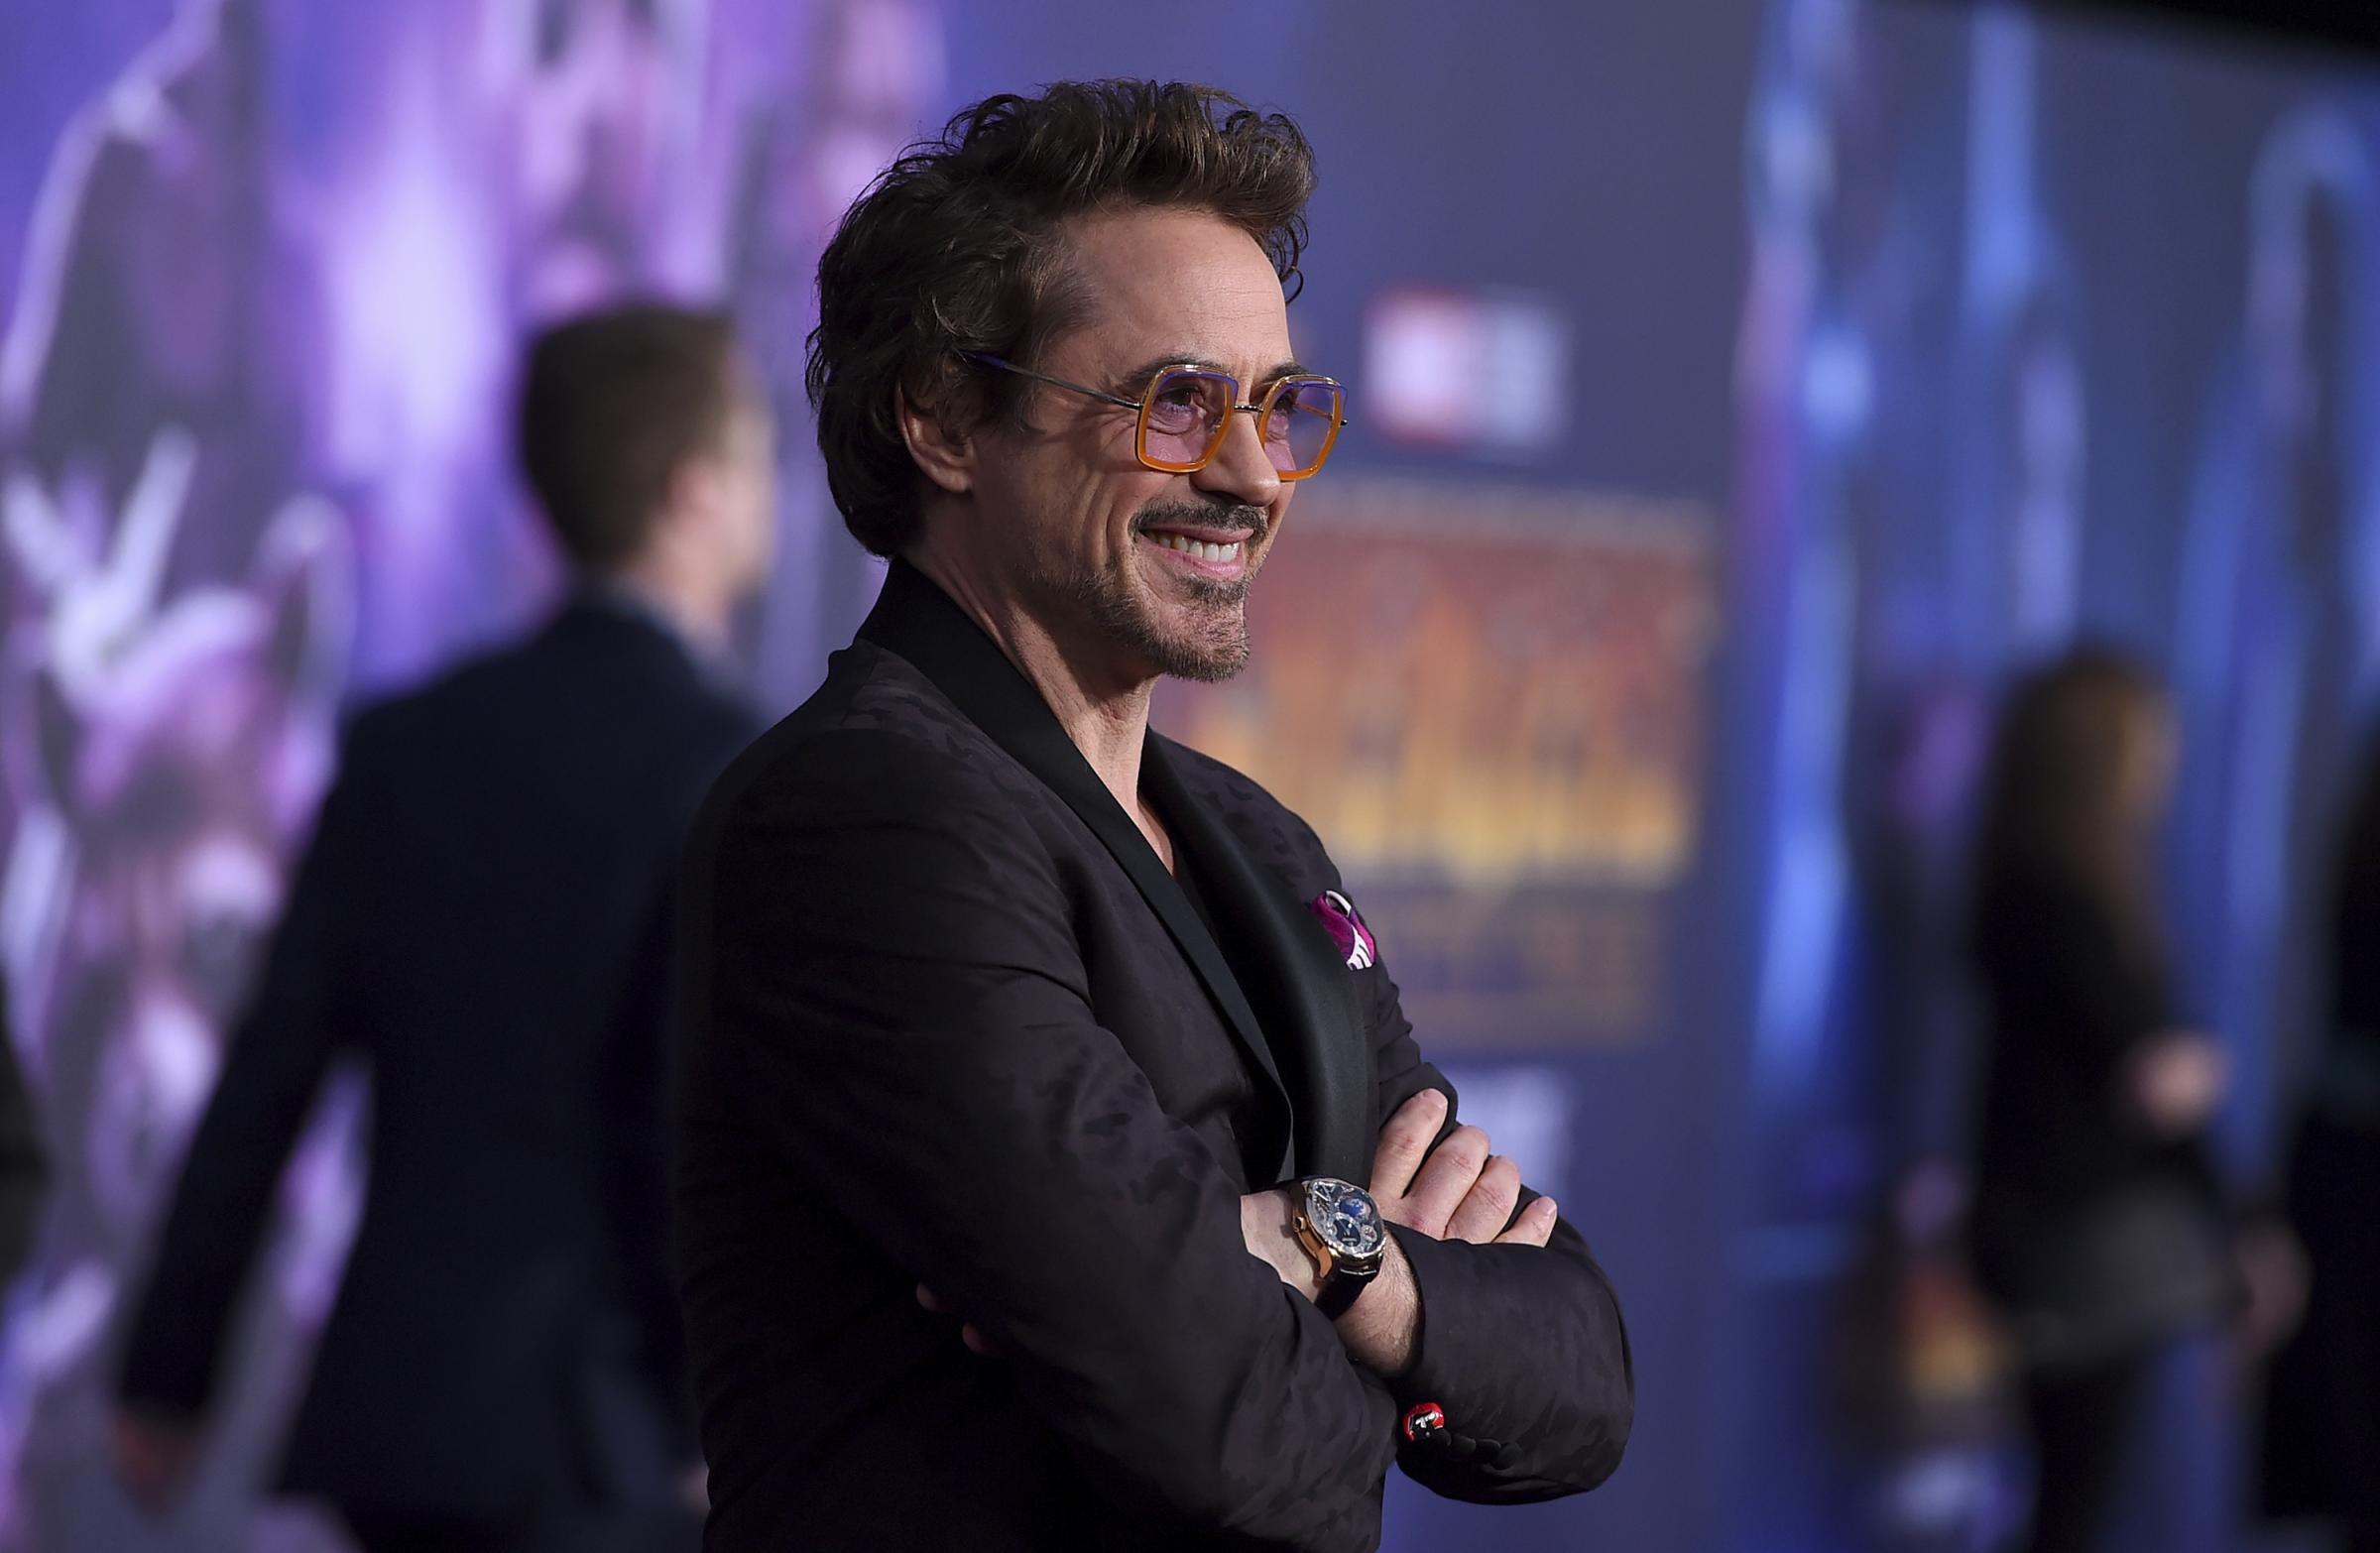 Robert Downey Jr. arrives at the world premiere of